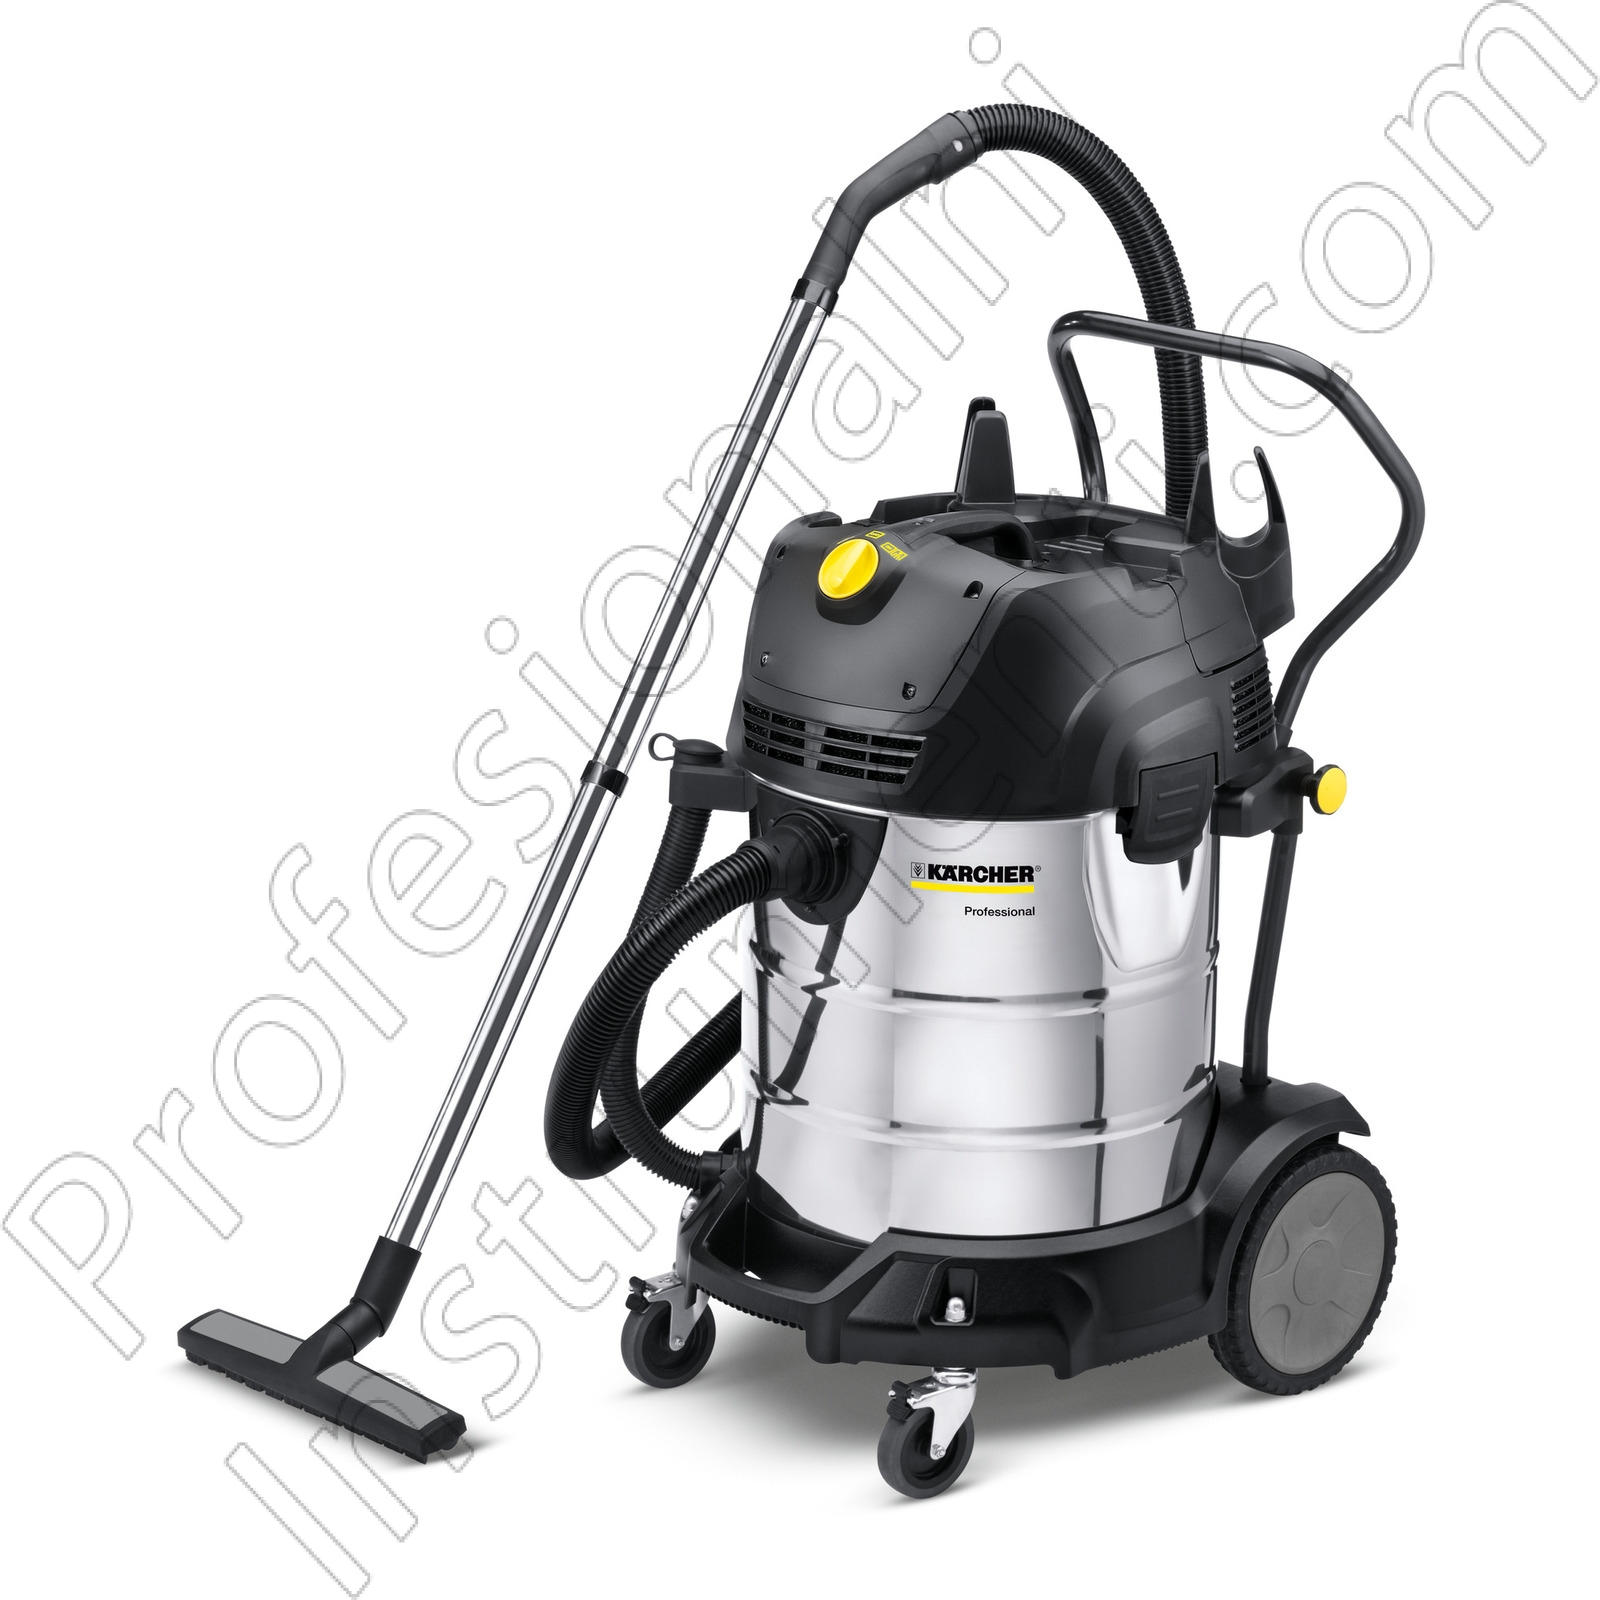 Karcher - Прахосмукачка Tact КЛАС NT 75/2 Tact² Me